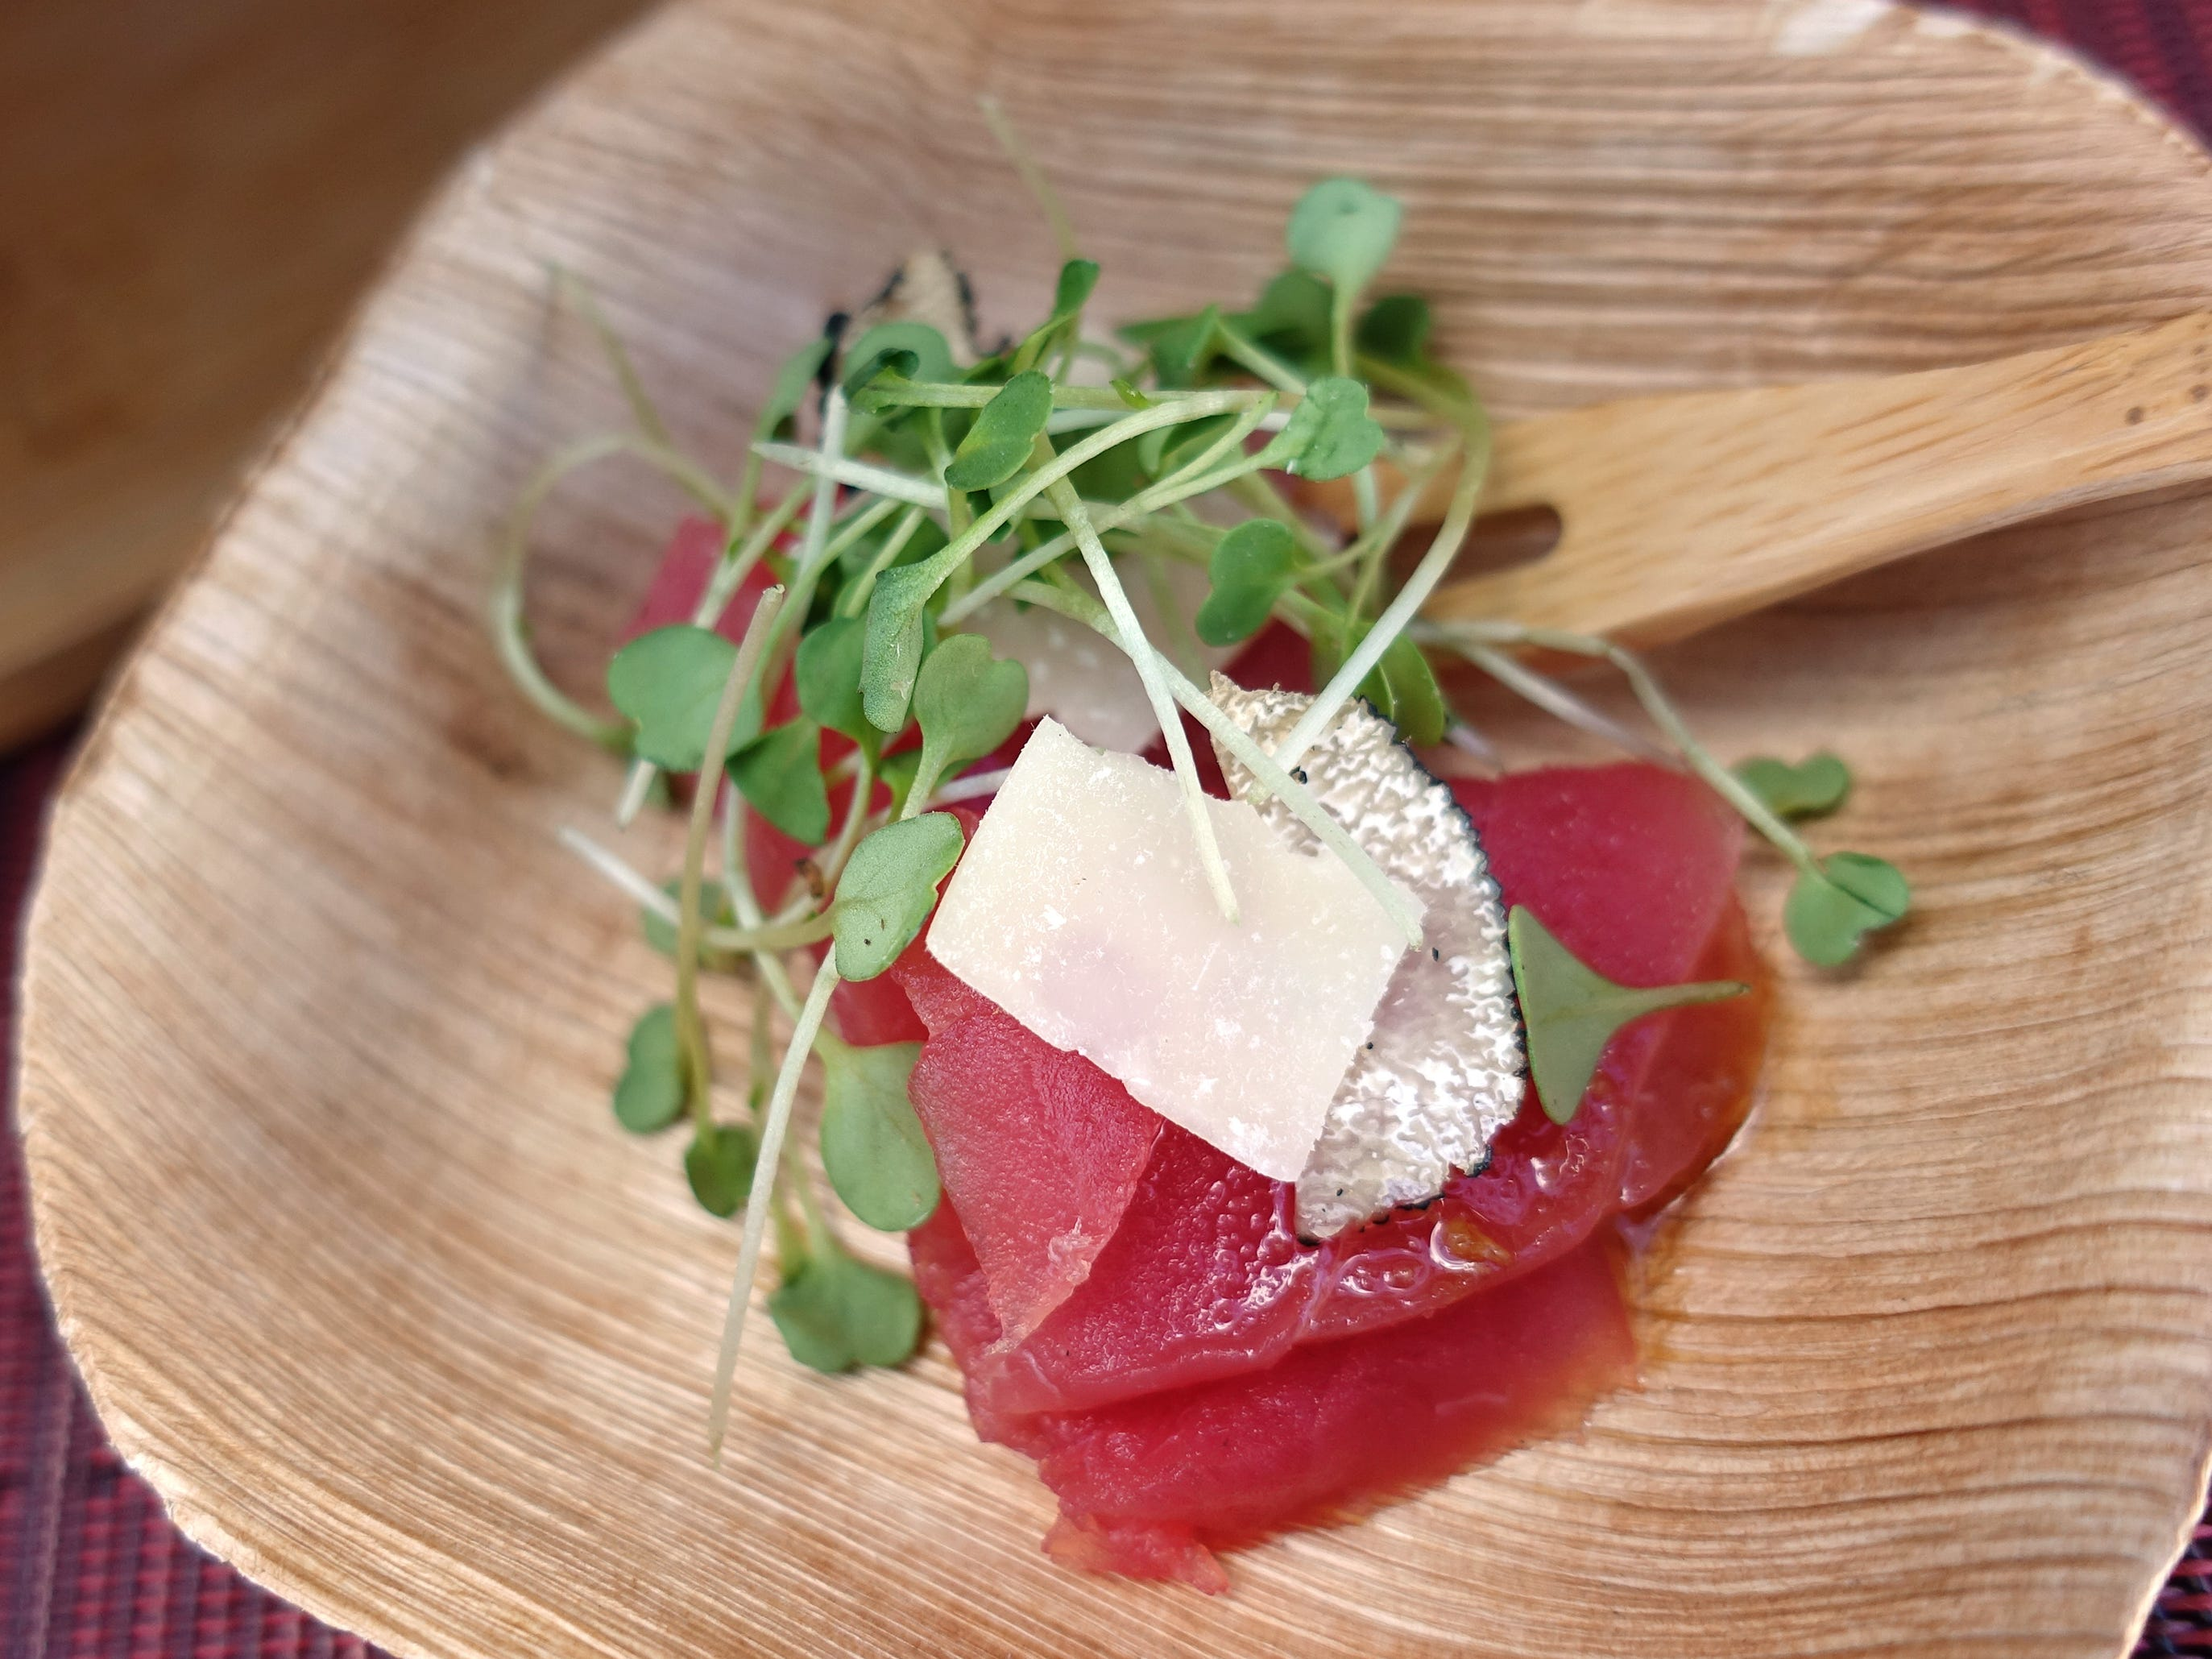 Truffled tuna carpaccio with wasabi truffle soy, Parmesan and micro arugula from Sushi Roku at the 2019 Devour Culinary Classic at the Desert Botanical Garden in Phoenix.